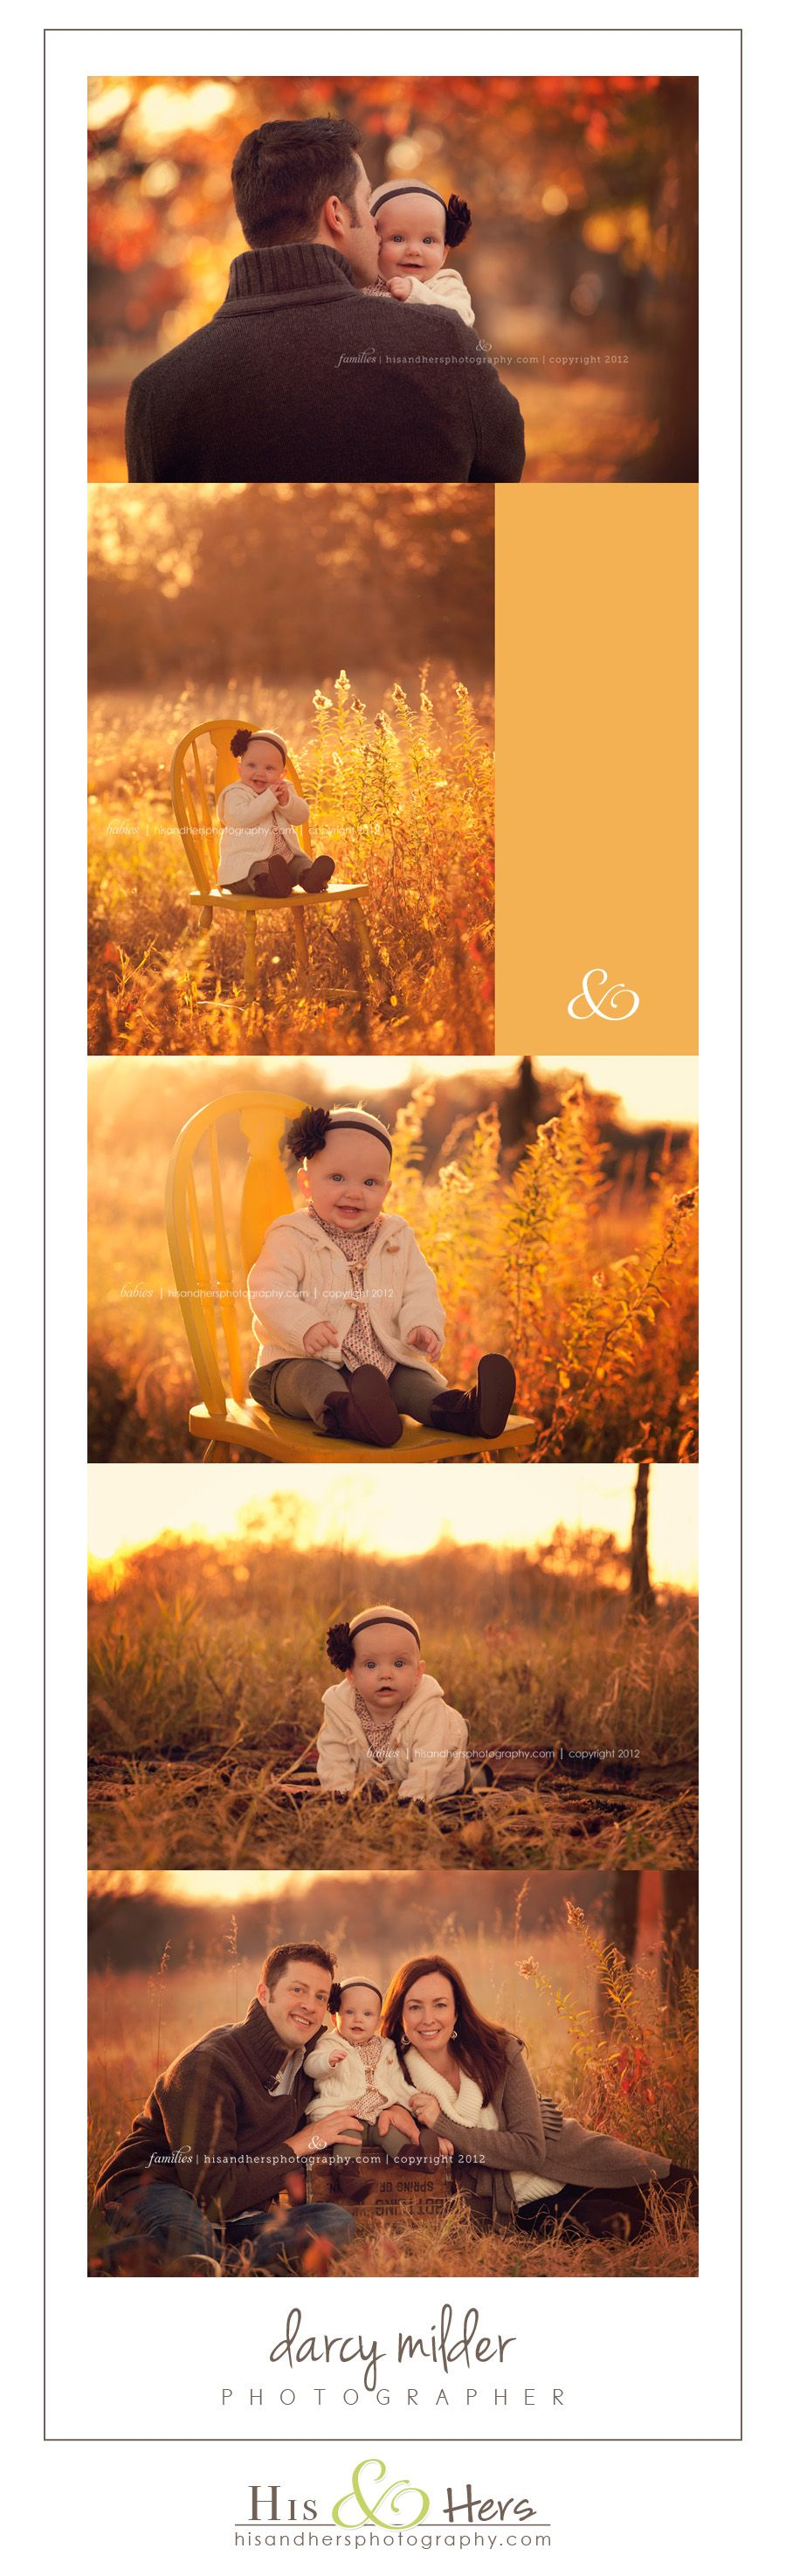 Iowa Children & Family Photographer | Charlotte 6 months old